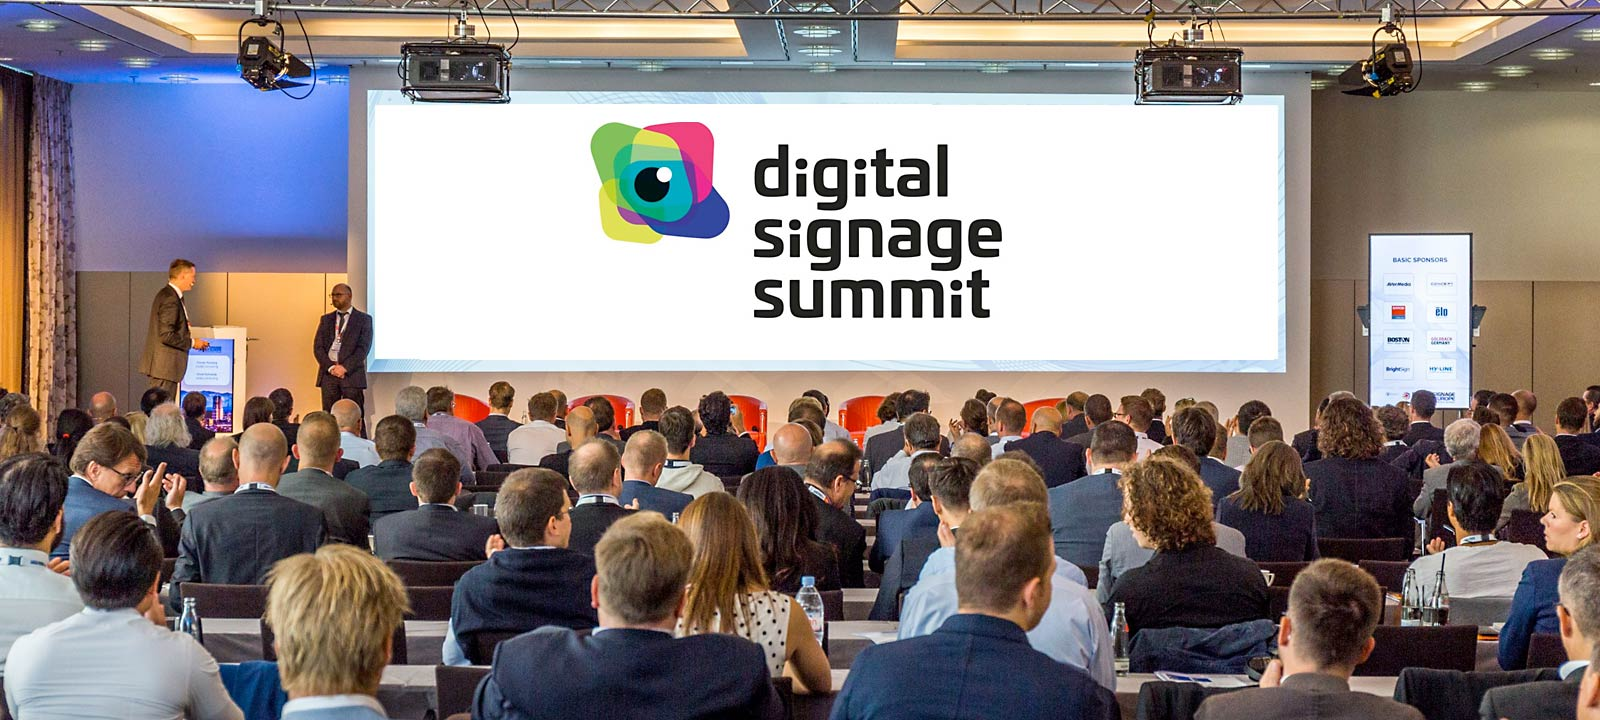 In 2018, new sections of system integration, networking and digital signage